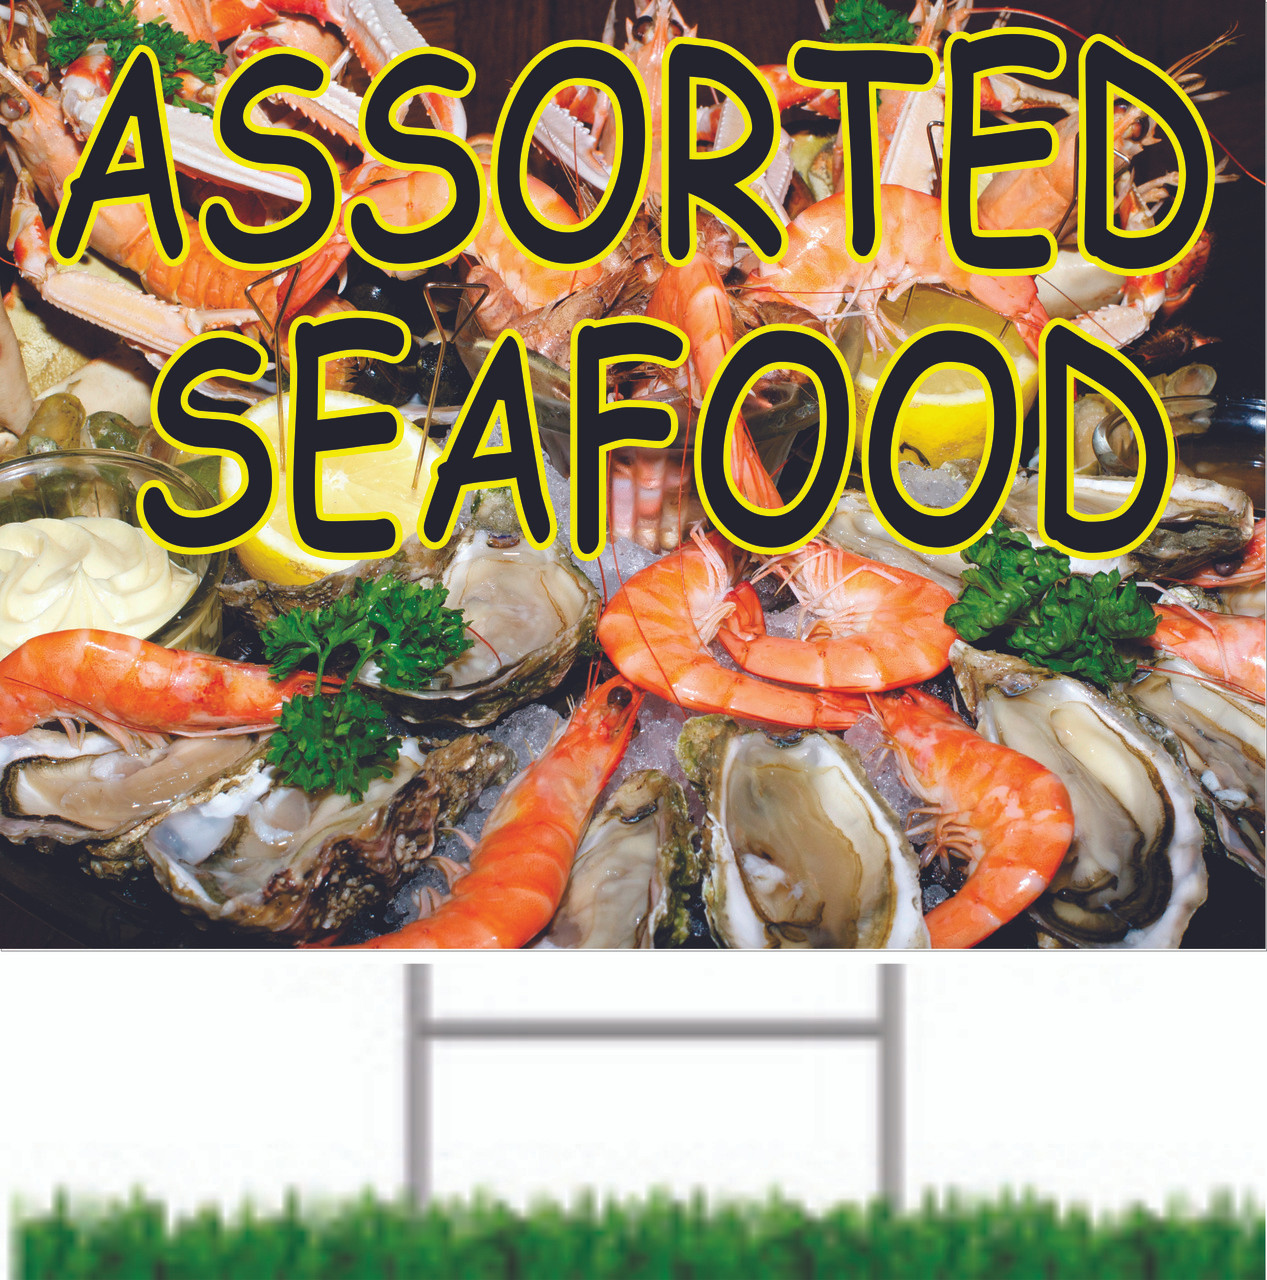 Assorted Seafood Road Signs is very inviting to Customers.